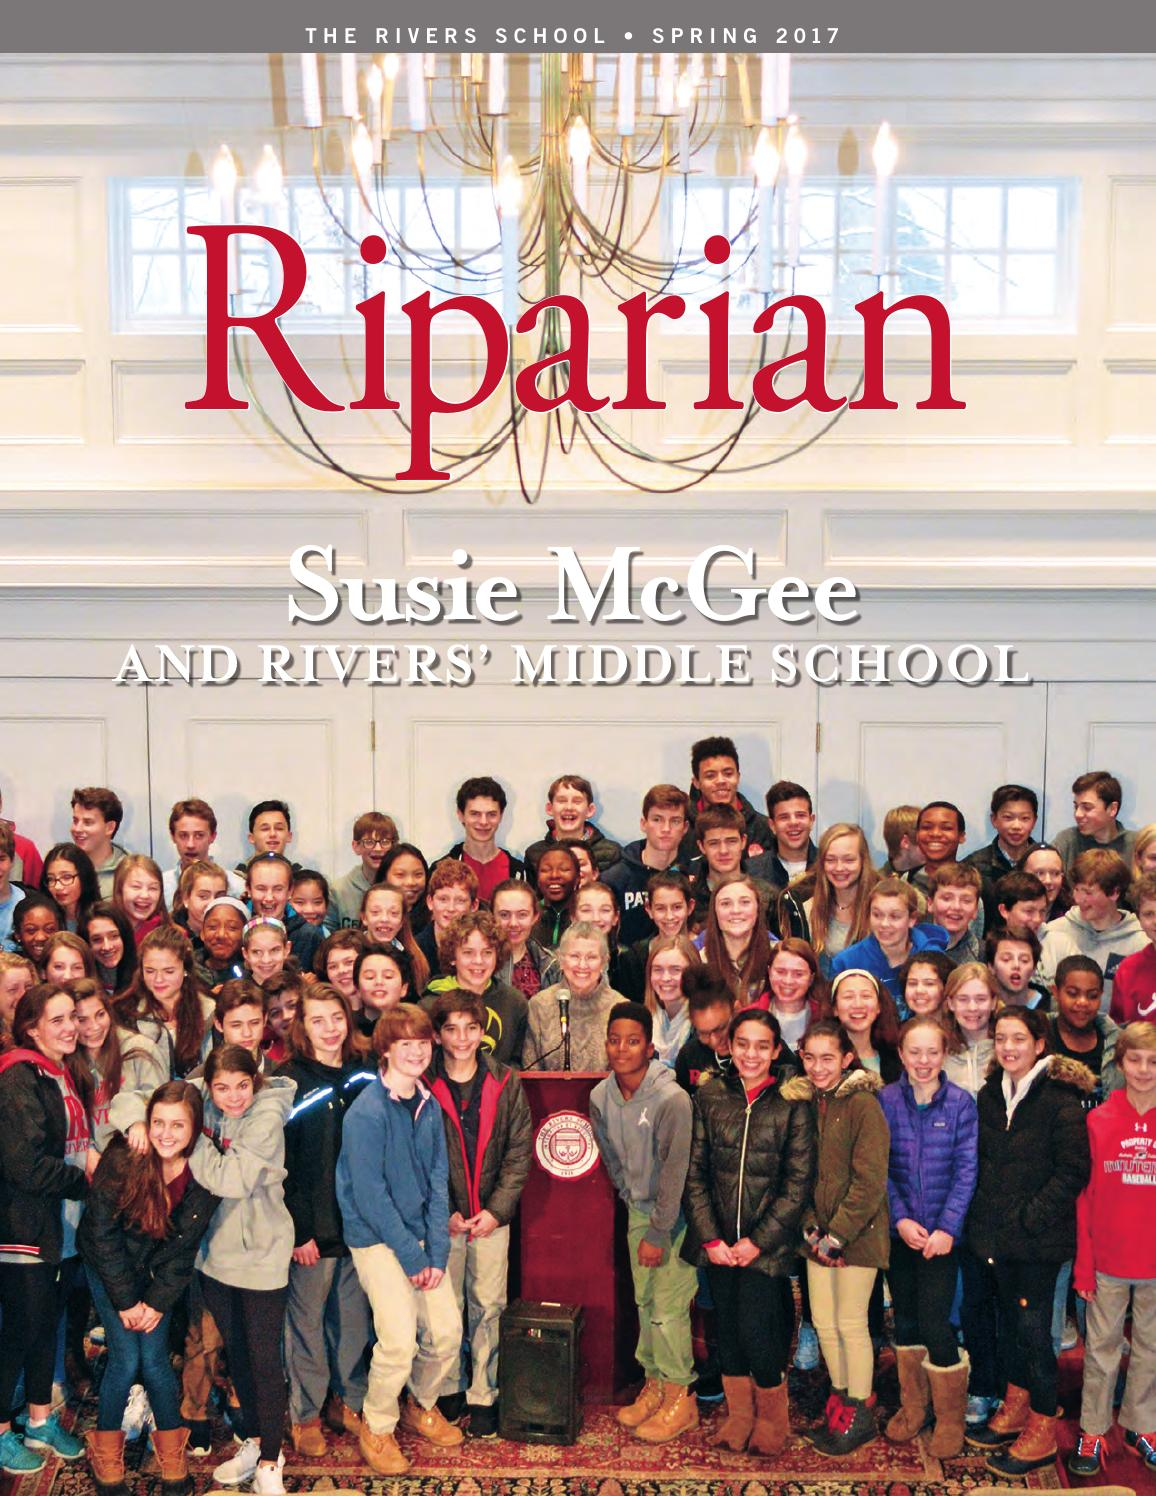 The Riparian Spring 2017 By The Rivers School Issuu